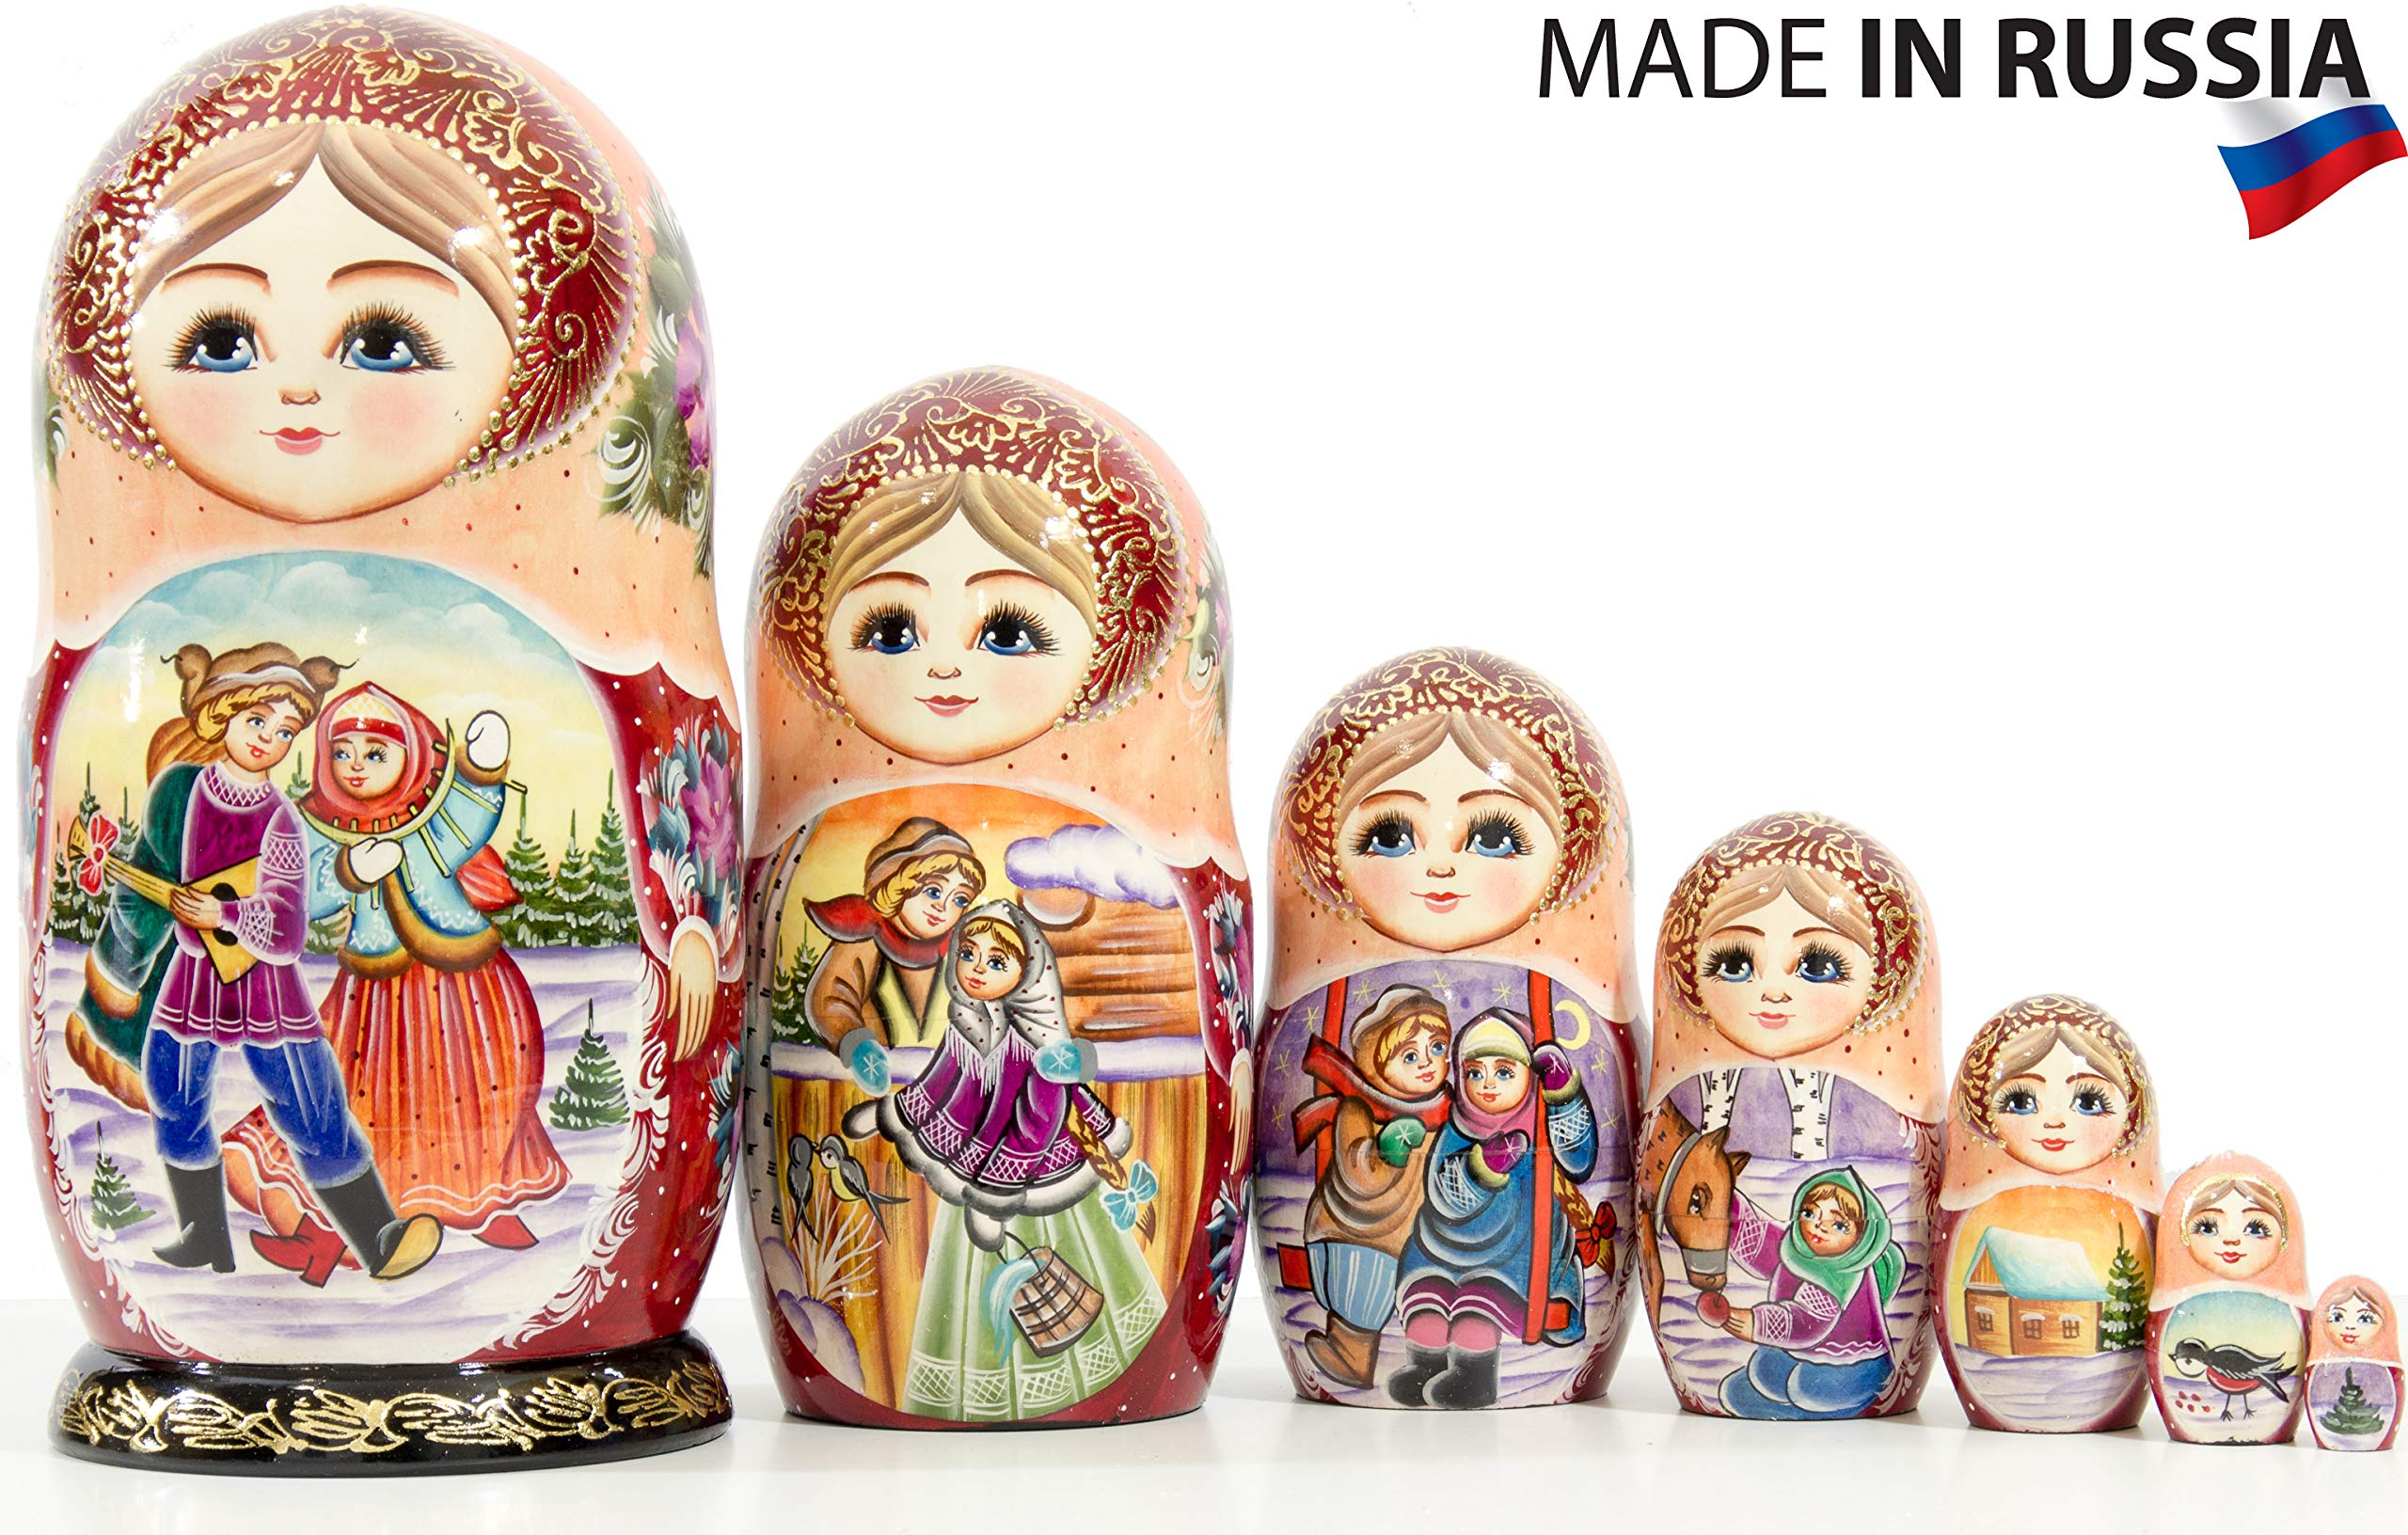 Nesting Doll - Russian Village - Hand Painted in Russia - Big Size - Wooden Decoration Gift Doll - Matryoshka Babushka (Design E, 8.25`` (7 Dolls in 1)) by craftsfromrussia